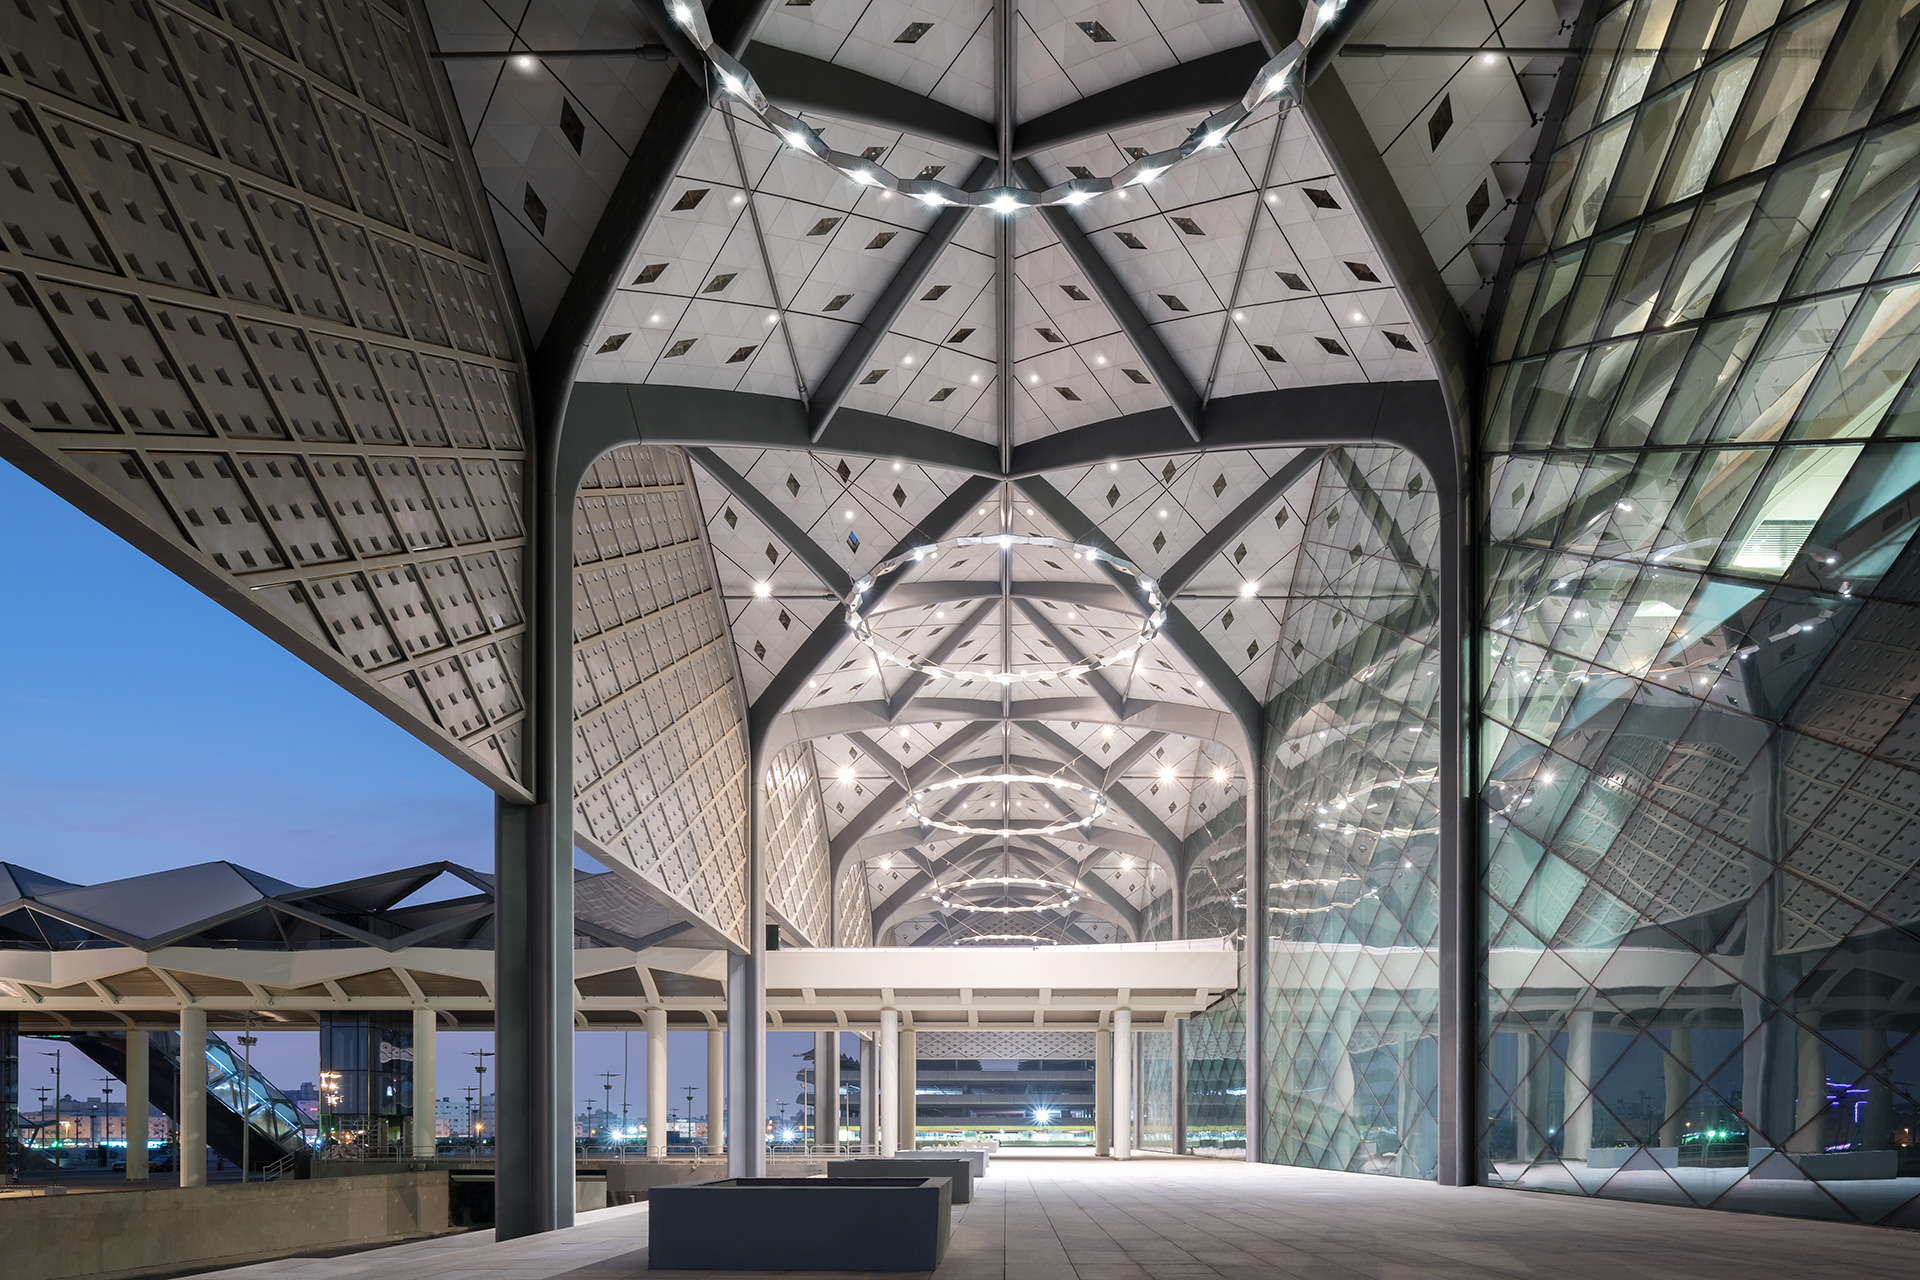 Each station also has shading screens contained within these arches, designed in collaboration with Saudi artist Zawiya, which express the local character – both materially and aesthetically | Haramain High Speed Rail | Foster + Partners| STIR